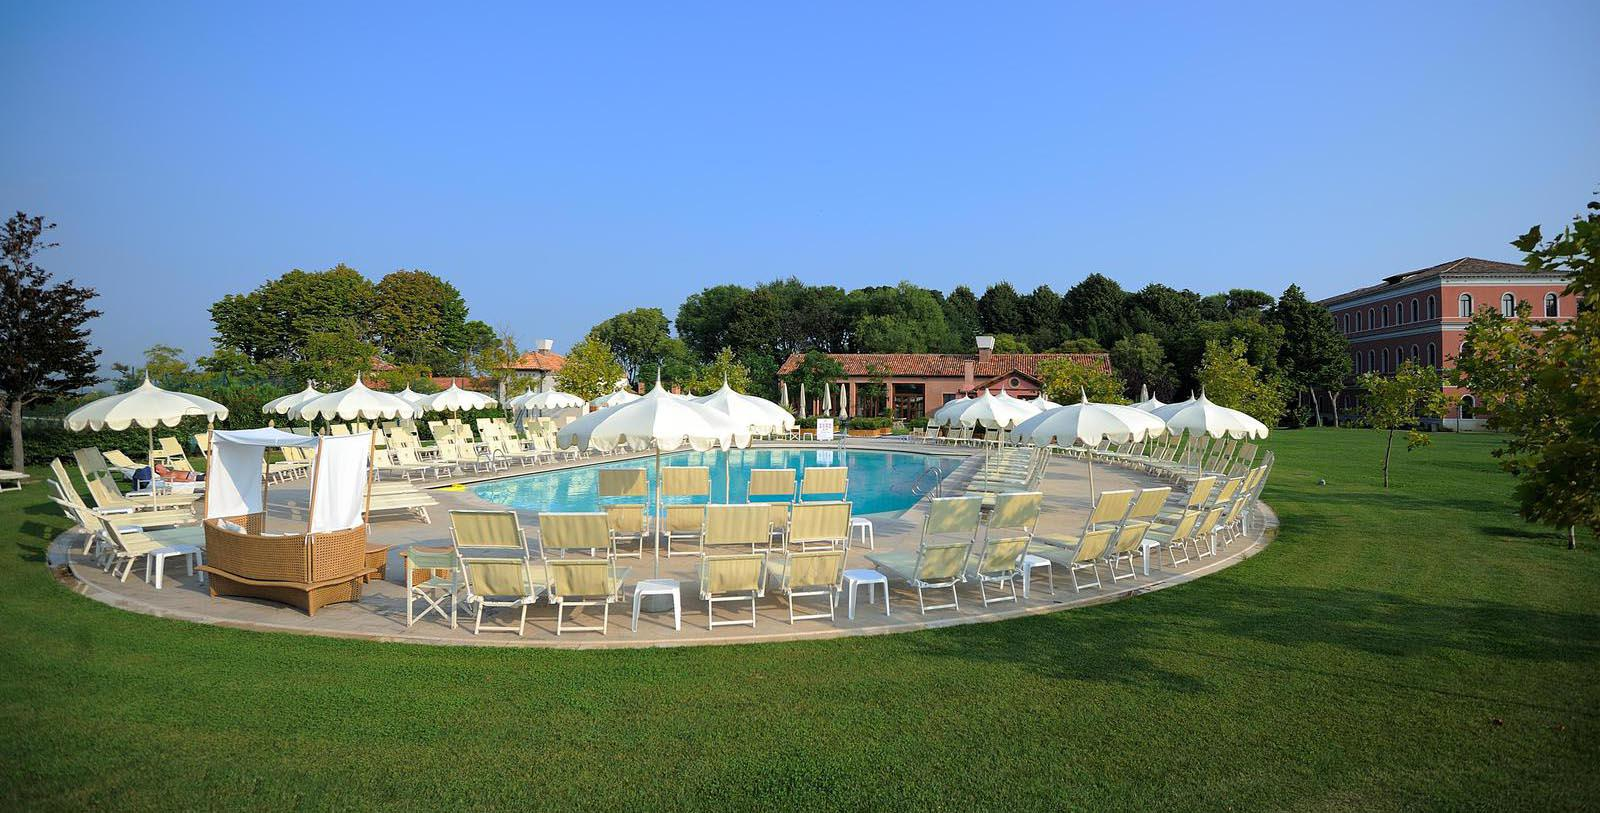 Image of Outdoor Pool at San Clemente Palace Kempinski, 1131, Member of Historic Hotels Worldwide, in Venice, Italy, Explore